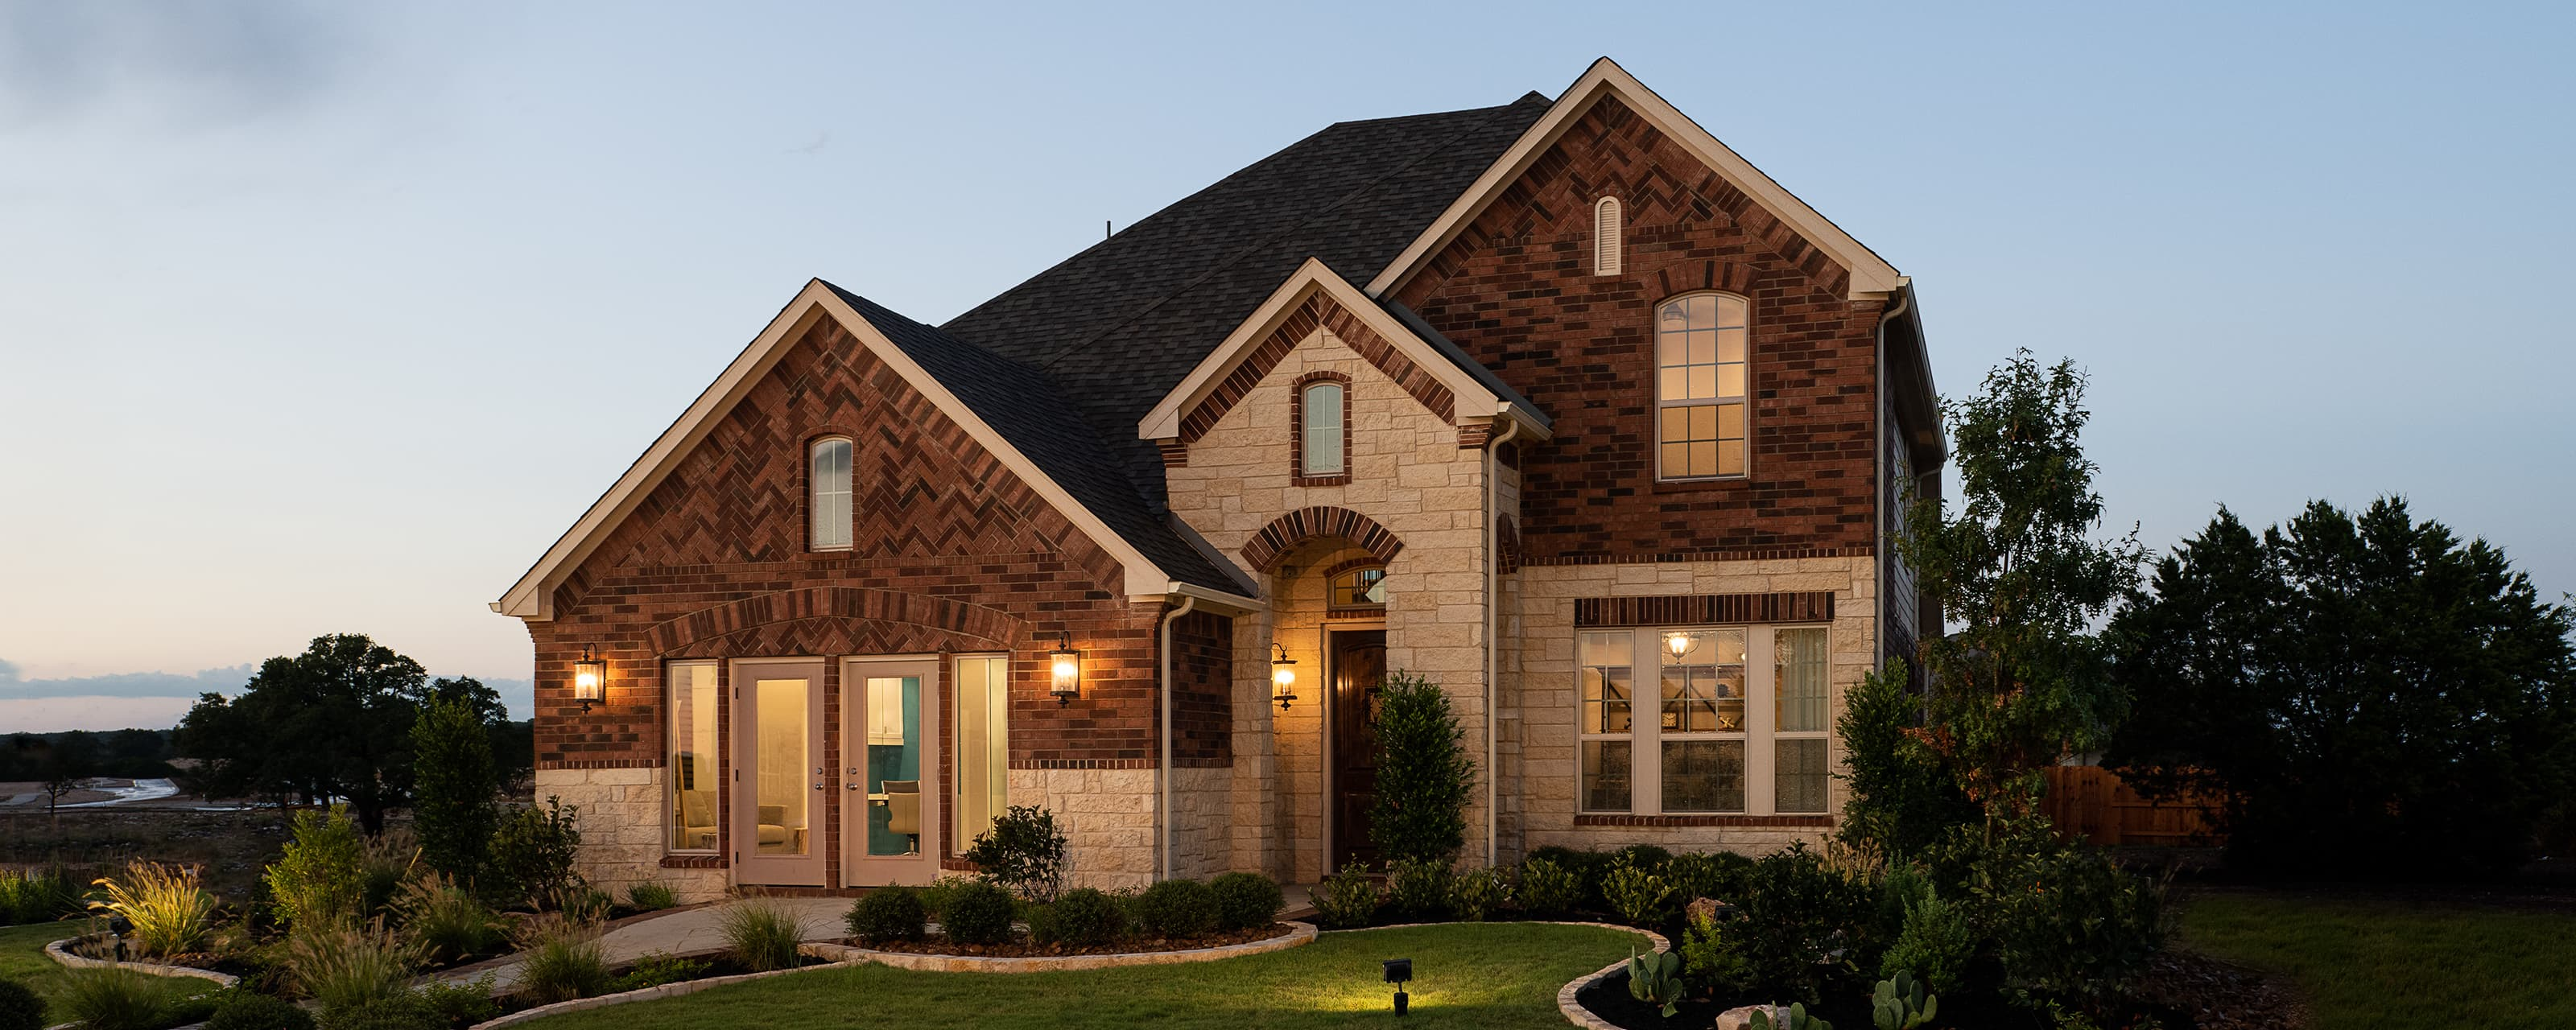 Meyer Ranch New Homes in New unfels, TX | Ashton Woods on 5 bedroom ranch house plans, texas open floor house plans, small one story ranch style house plans, modular ranch style house plans, texas ranch house exterior colors, hill country ranch floor plans, texas ranch kitchens, robson ranch floor plans, texas prairie house plans, texas hill country house plans, texas house plans with porches, ranch remodel floor plans, texas house plans designs, rustic ranch house plans, texas ranch cabin plans, western ranch house plans, texas style house plans, ranch model floor plans, simple ranch floor plans, texas king ranch logo,